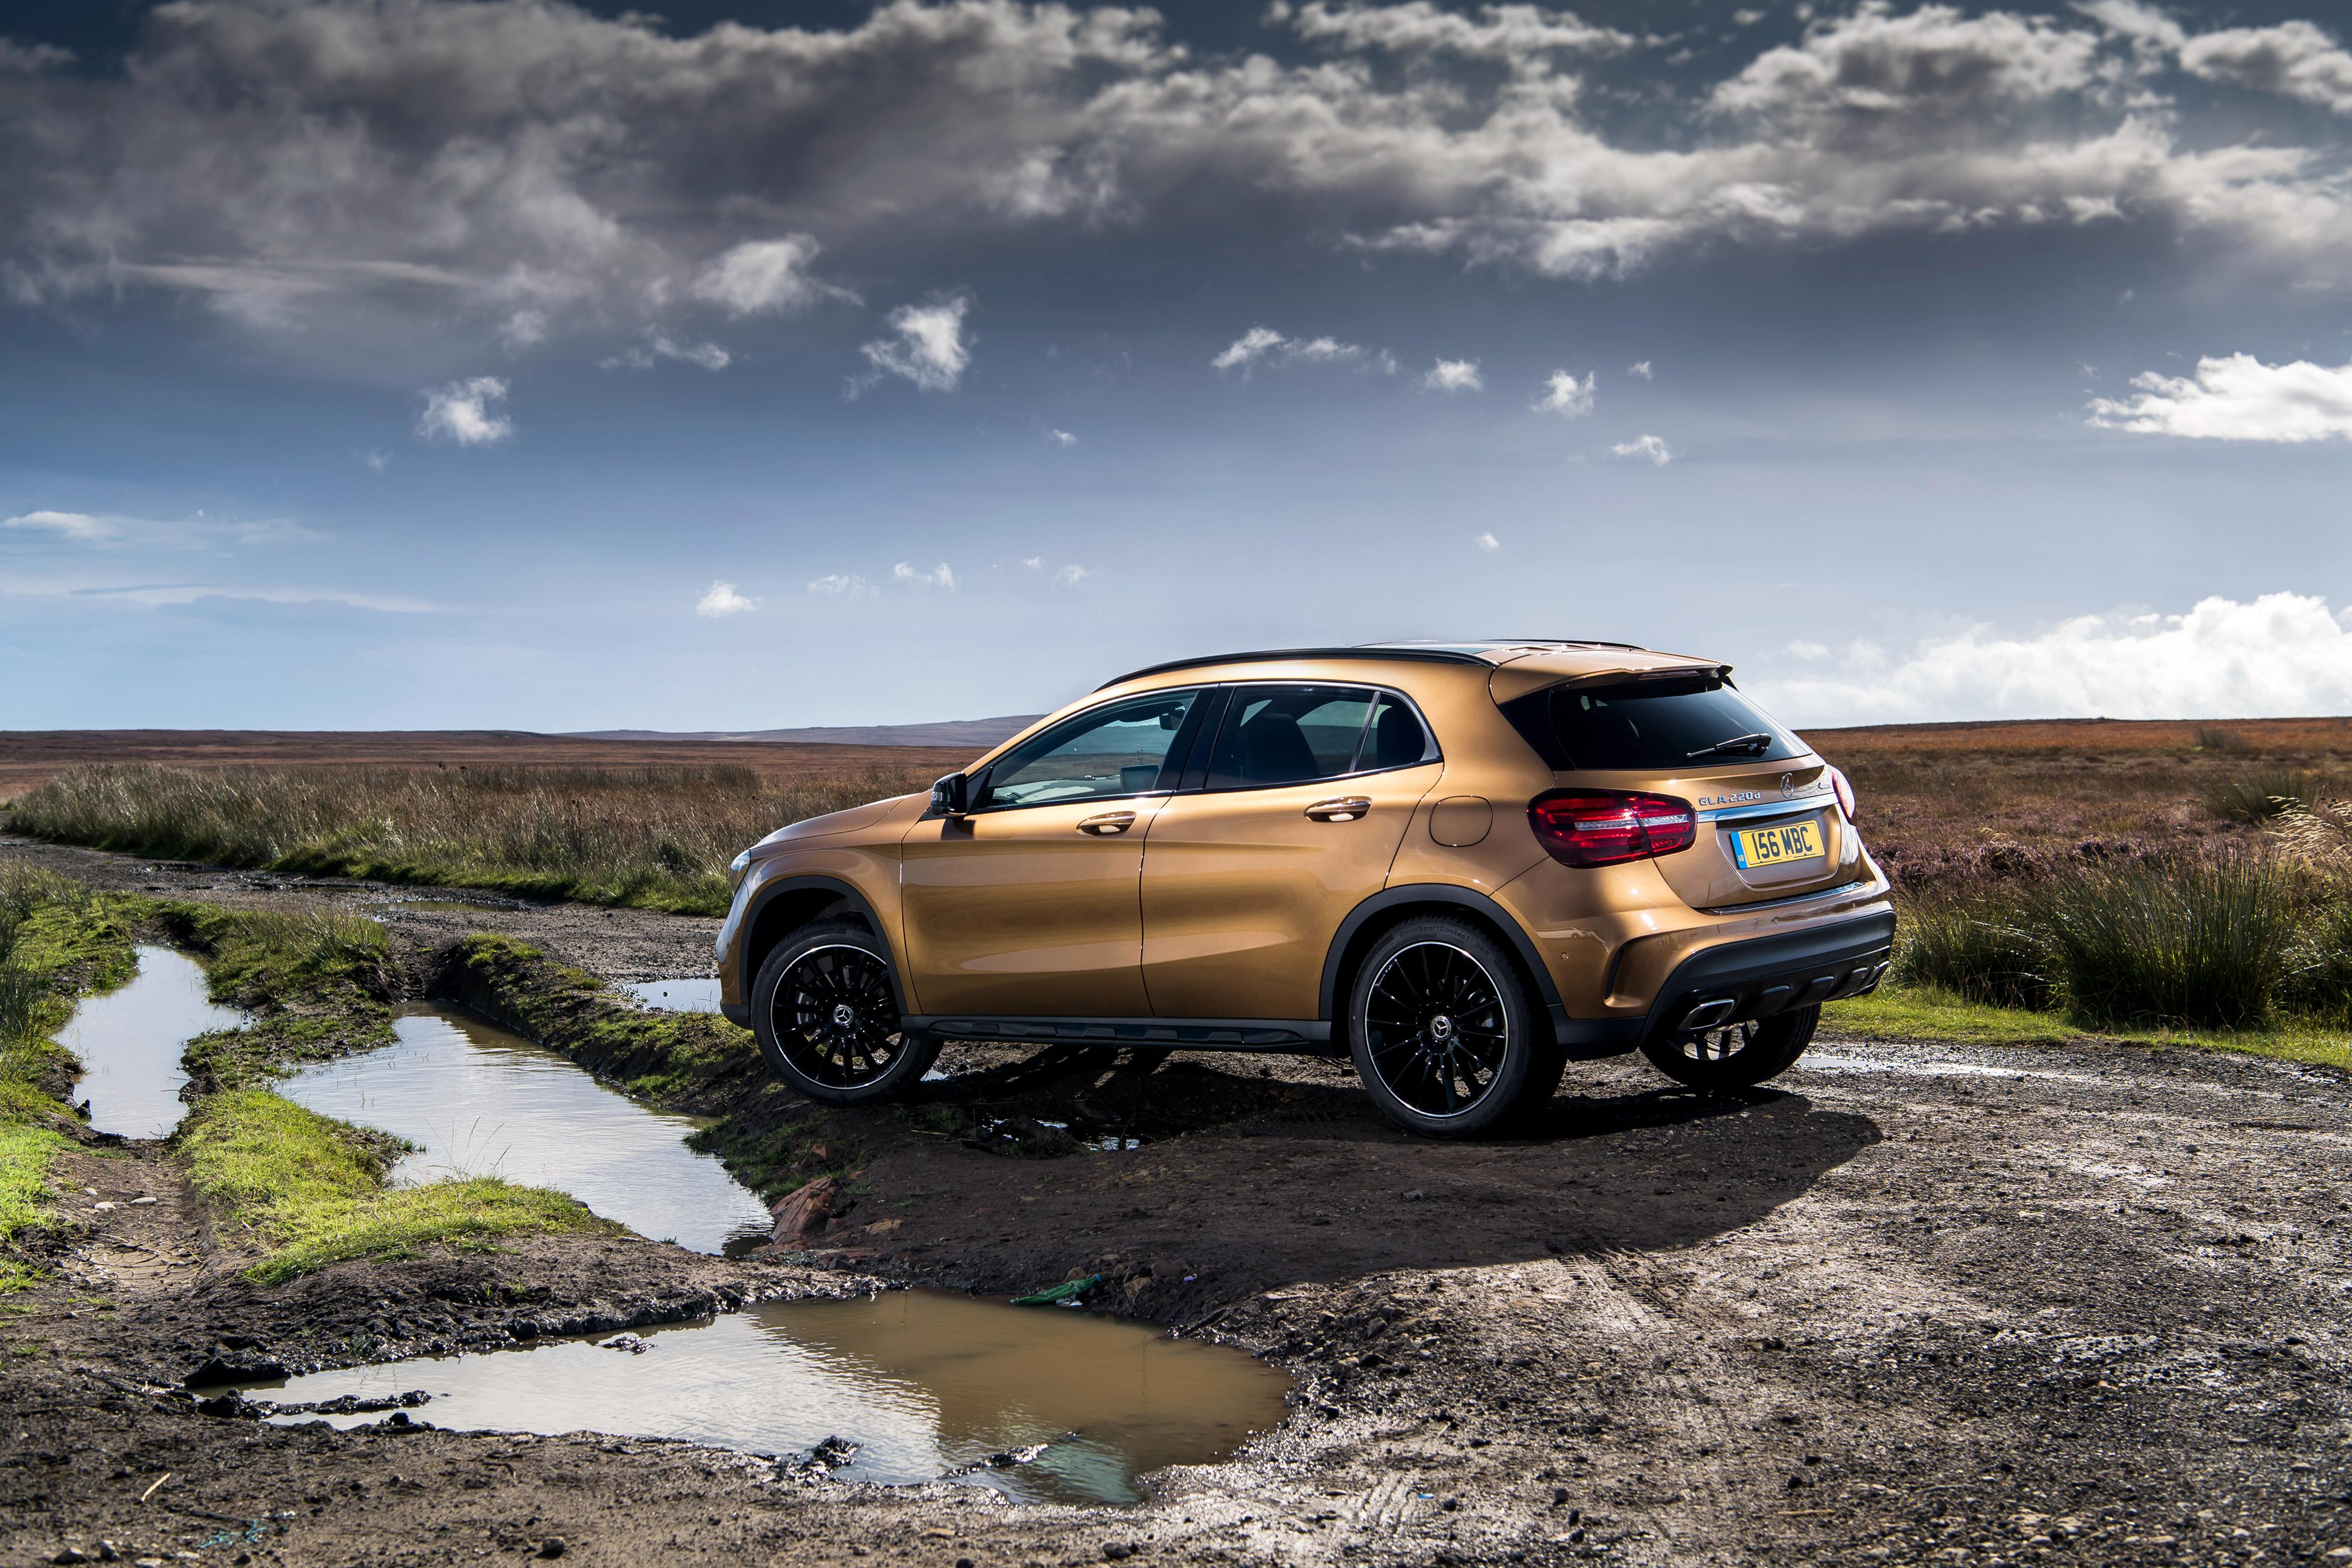 Mercedes Benz GLA 220 D 4MATIC AMG Line 2017 4k, HD Cars, 4k ...